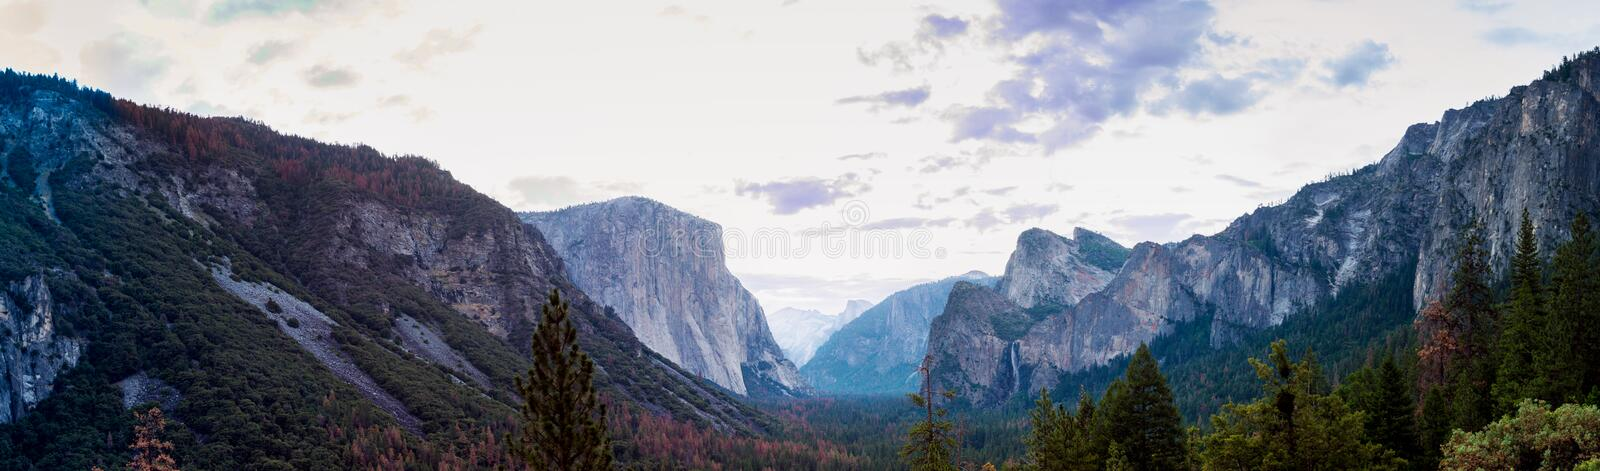 Sunrise at Yosemite Valley vista point. Panorama of Yosemite Valley from Valley View vista point, including Half Dome and Bridal Veil Falls royalty free stock image